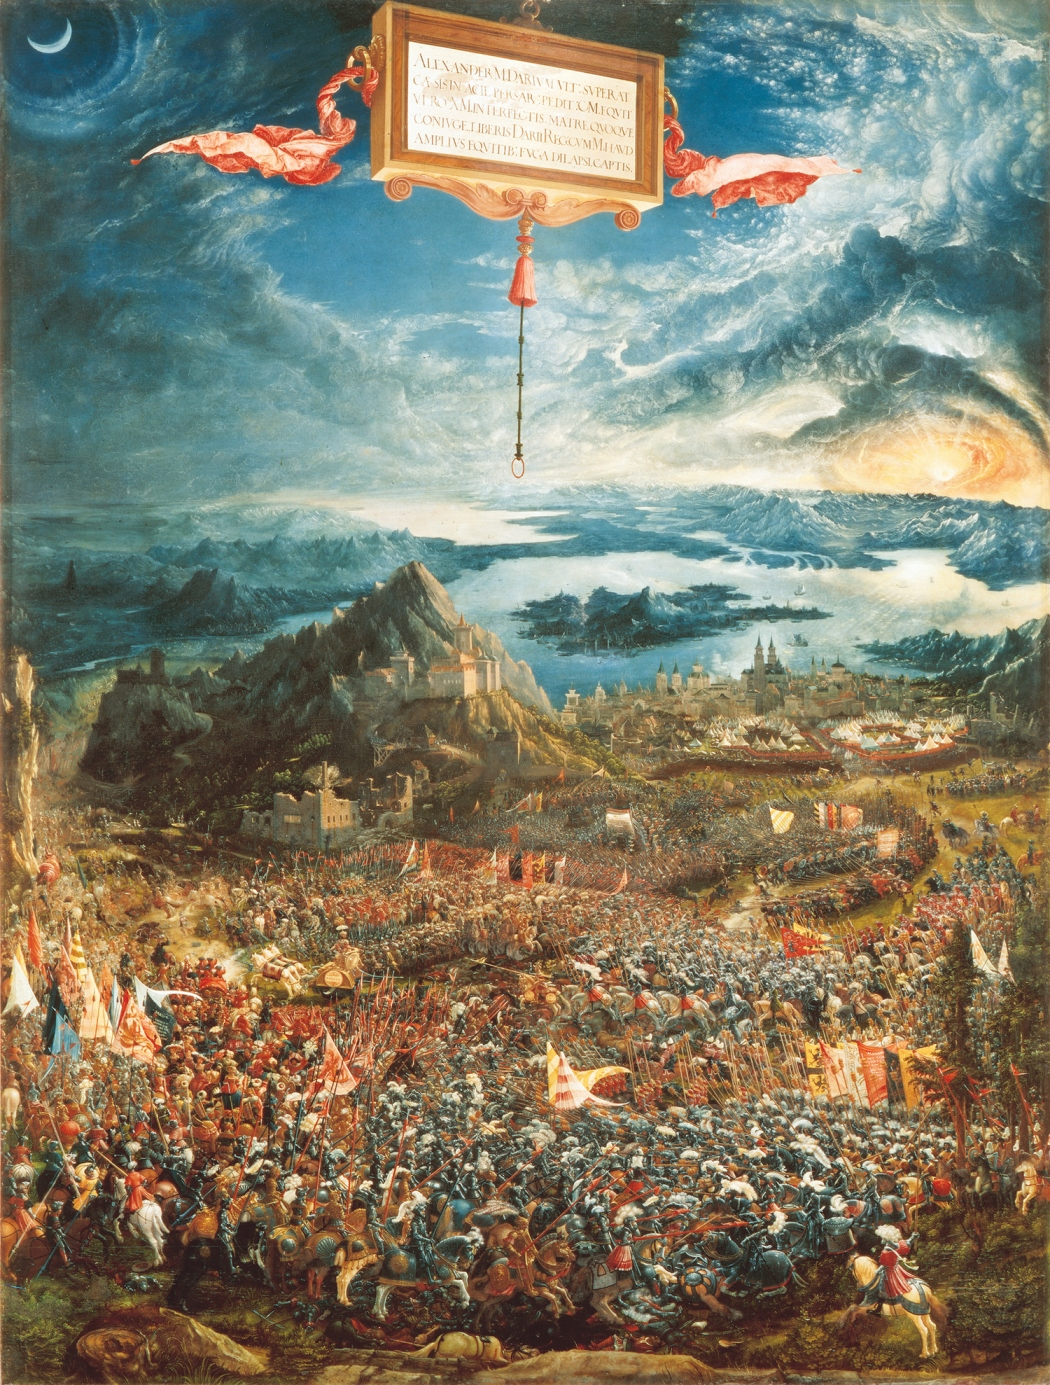 La batalla de alejandro en issos albrecht altdorfer for Battle of issus painting